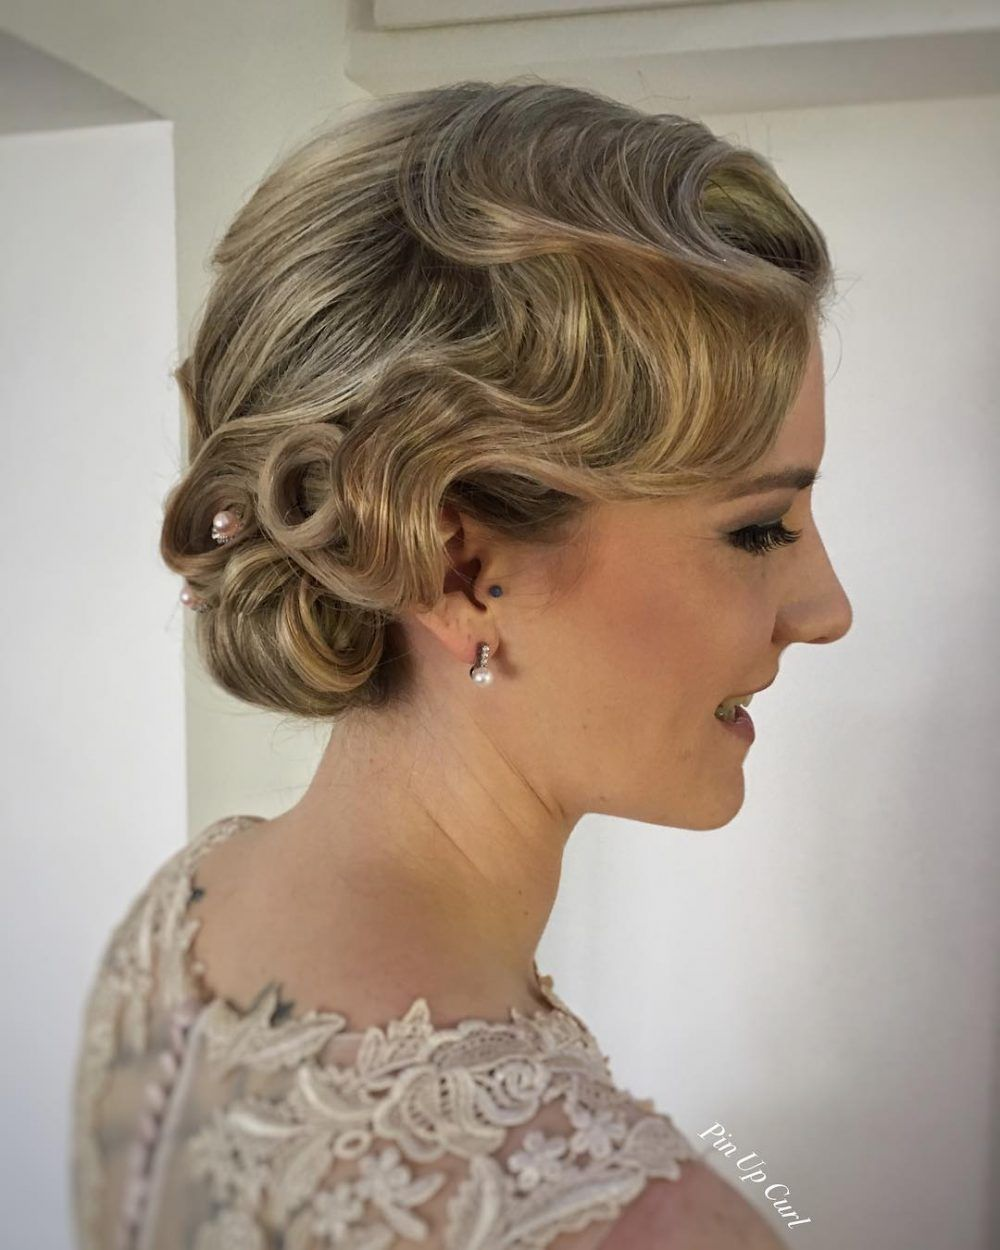 30 Great Image Of Adorable Great Gatsby Hairstyles For Short Hair Lifestyle By Mediumgratuit Info Roaring 20s Hairstyles Medium Hair Styles Gatsby Hair